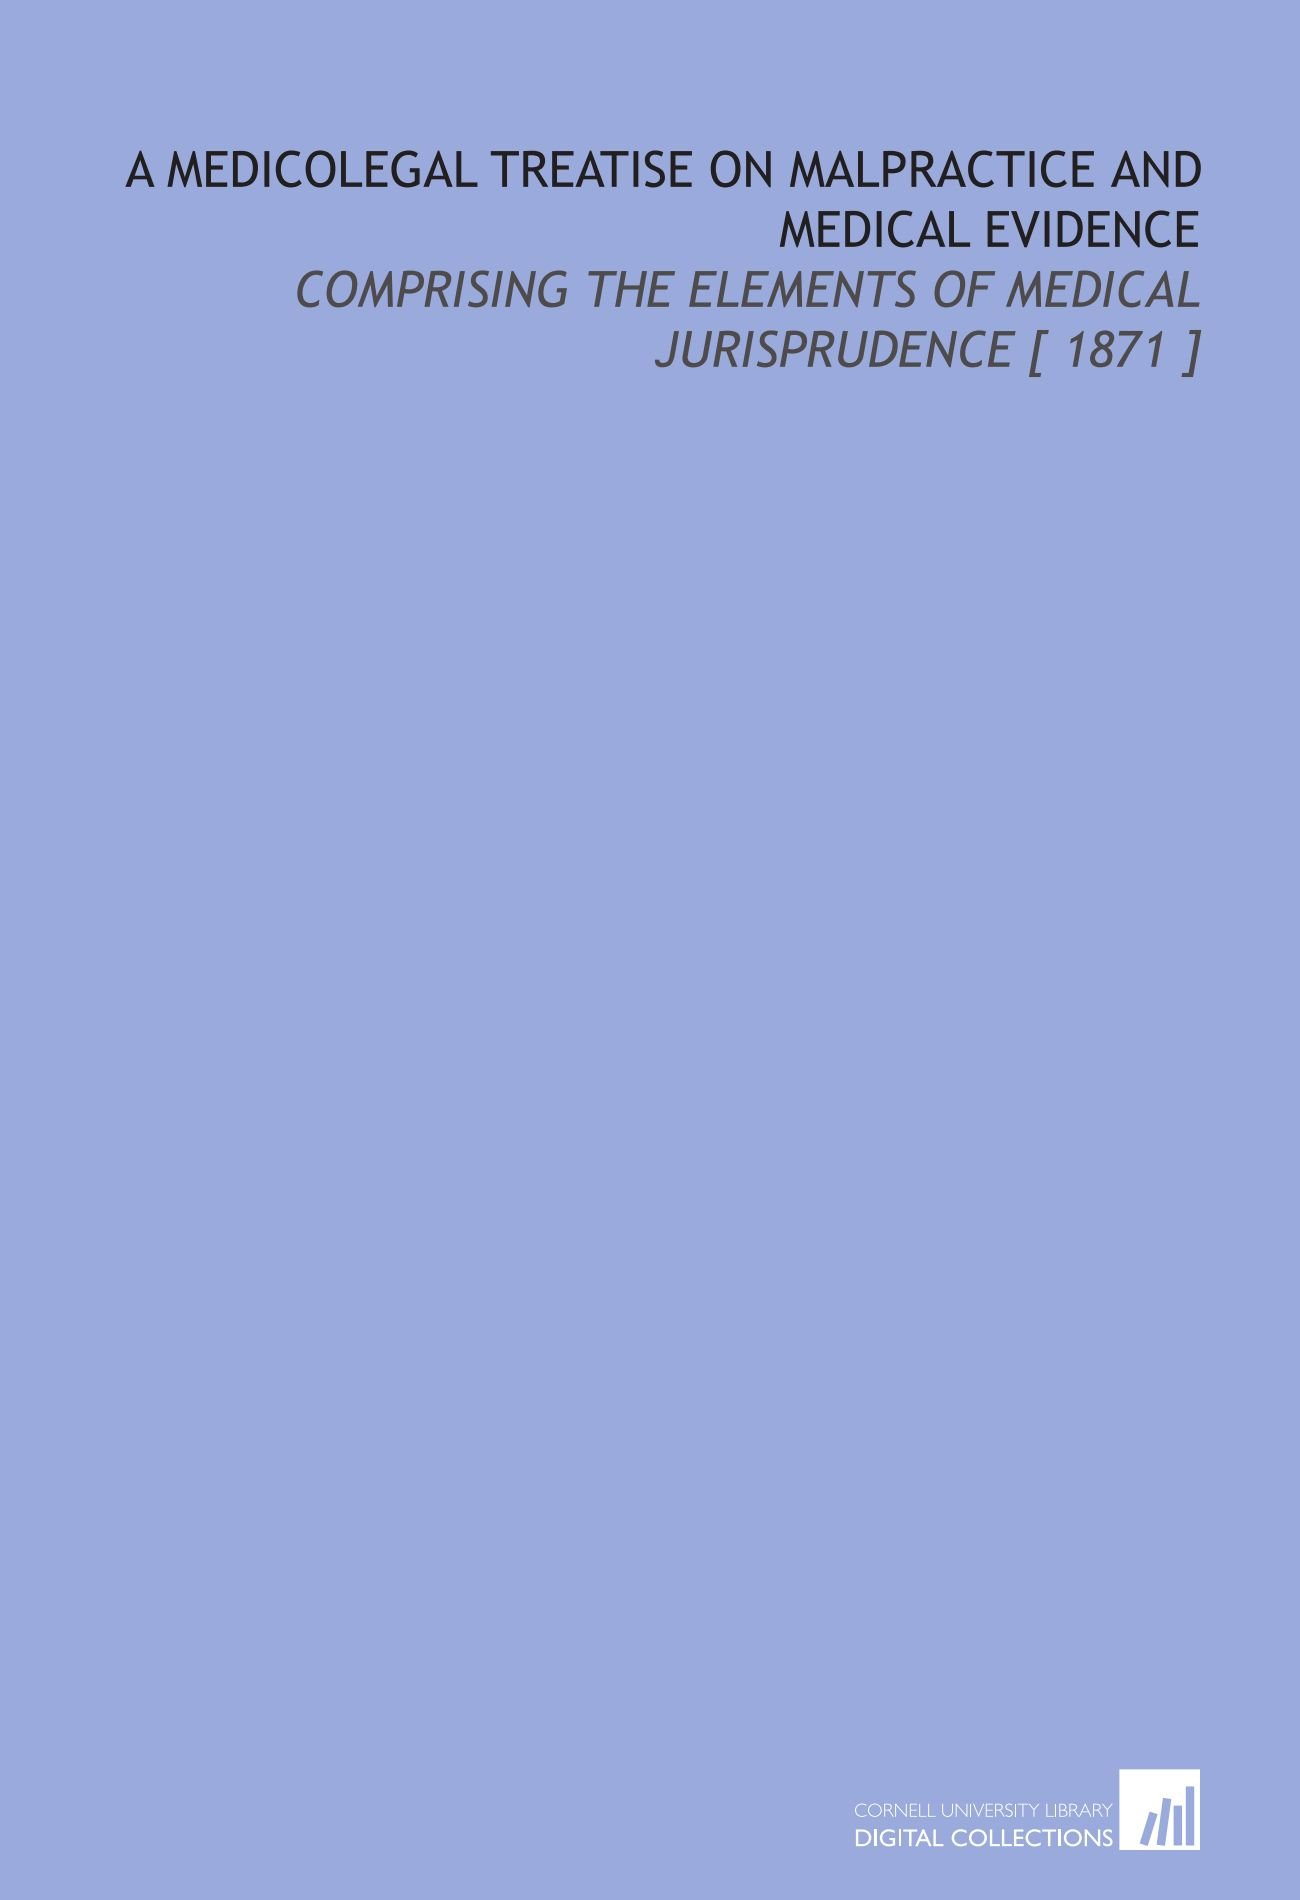 Download A Medicolegal Treatise on Malpractice and Medical Evidence: Comprising the Elements of Medical Jurisprudence [ 1871 ] pdf